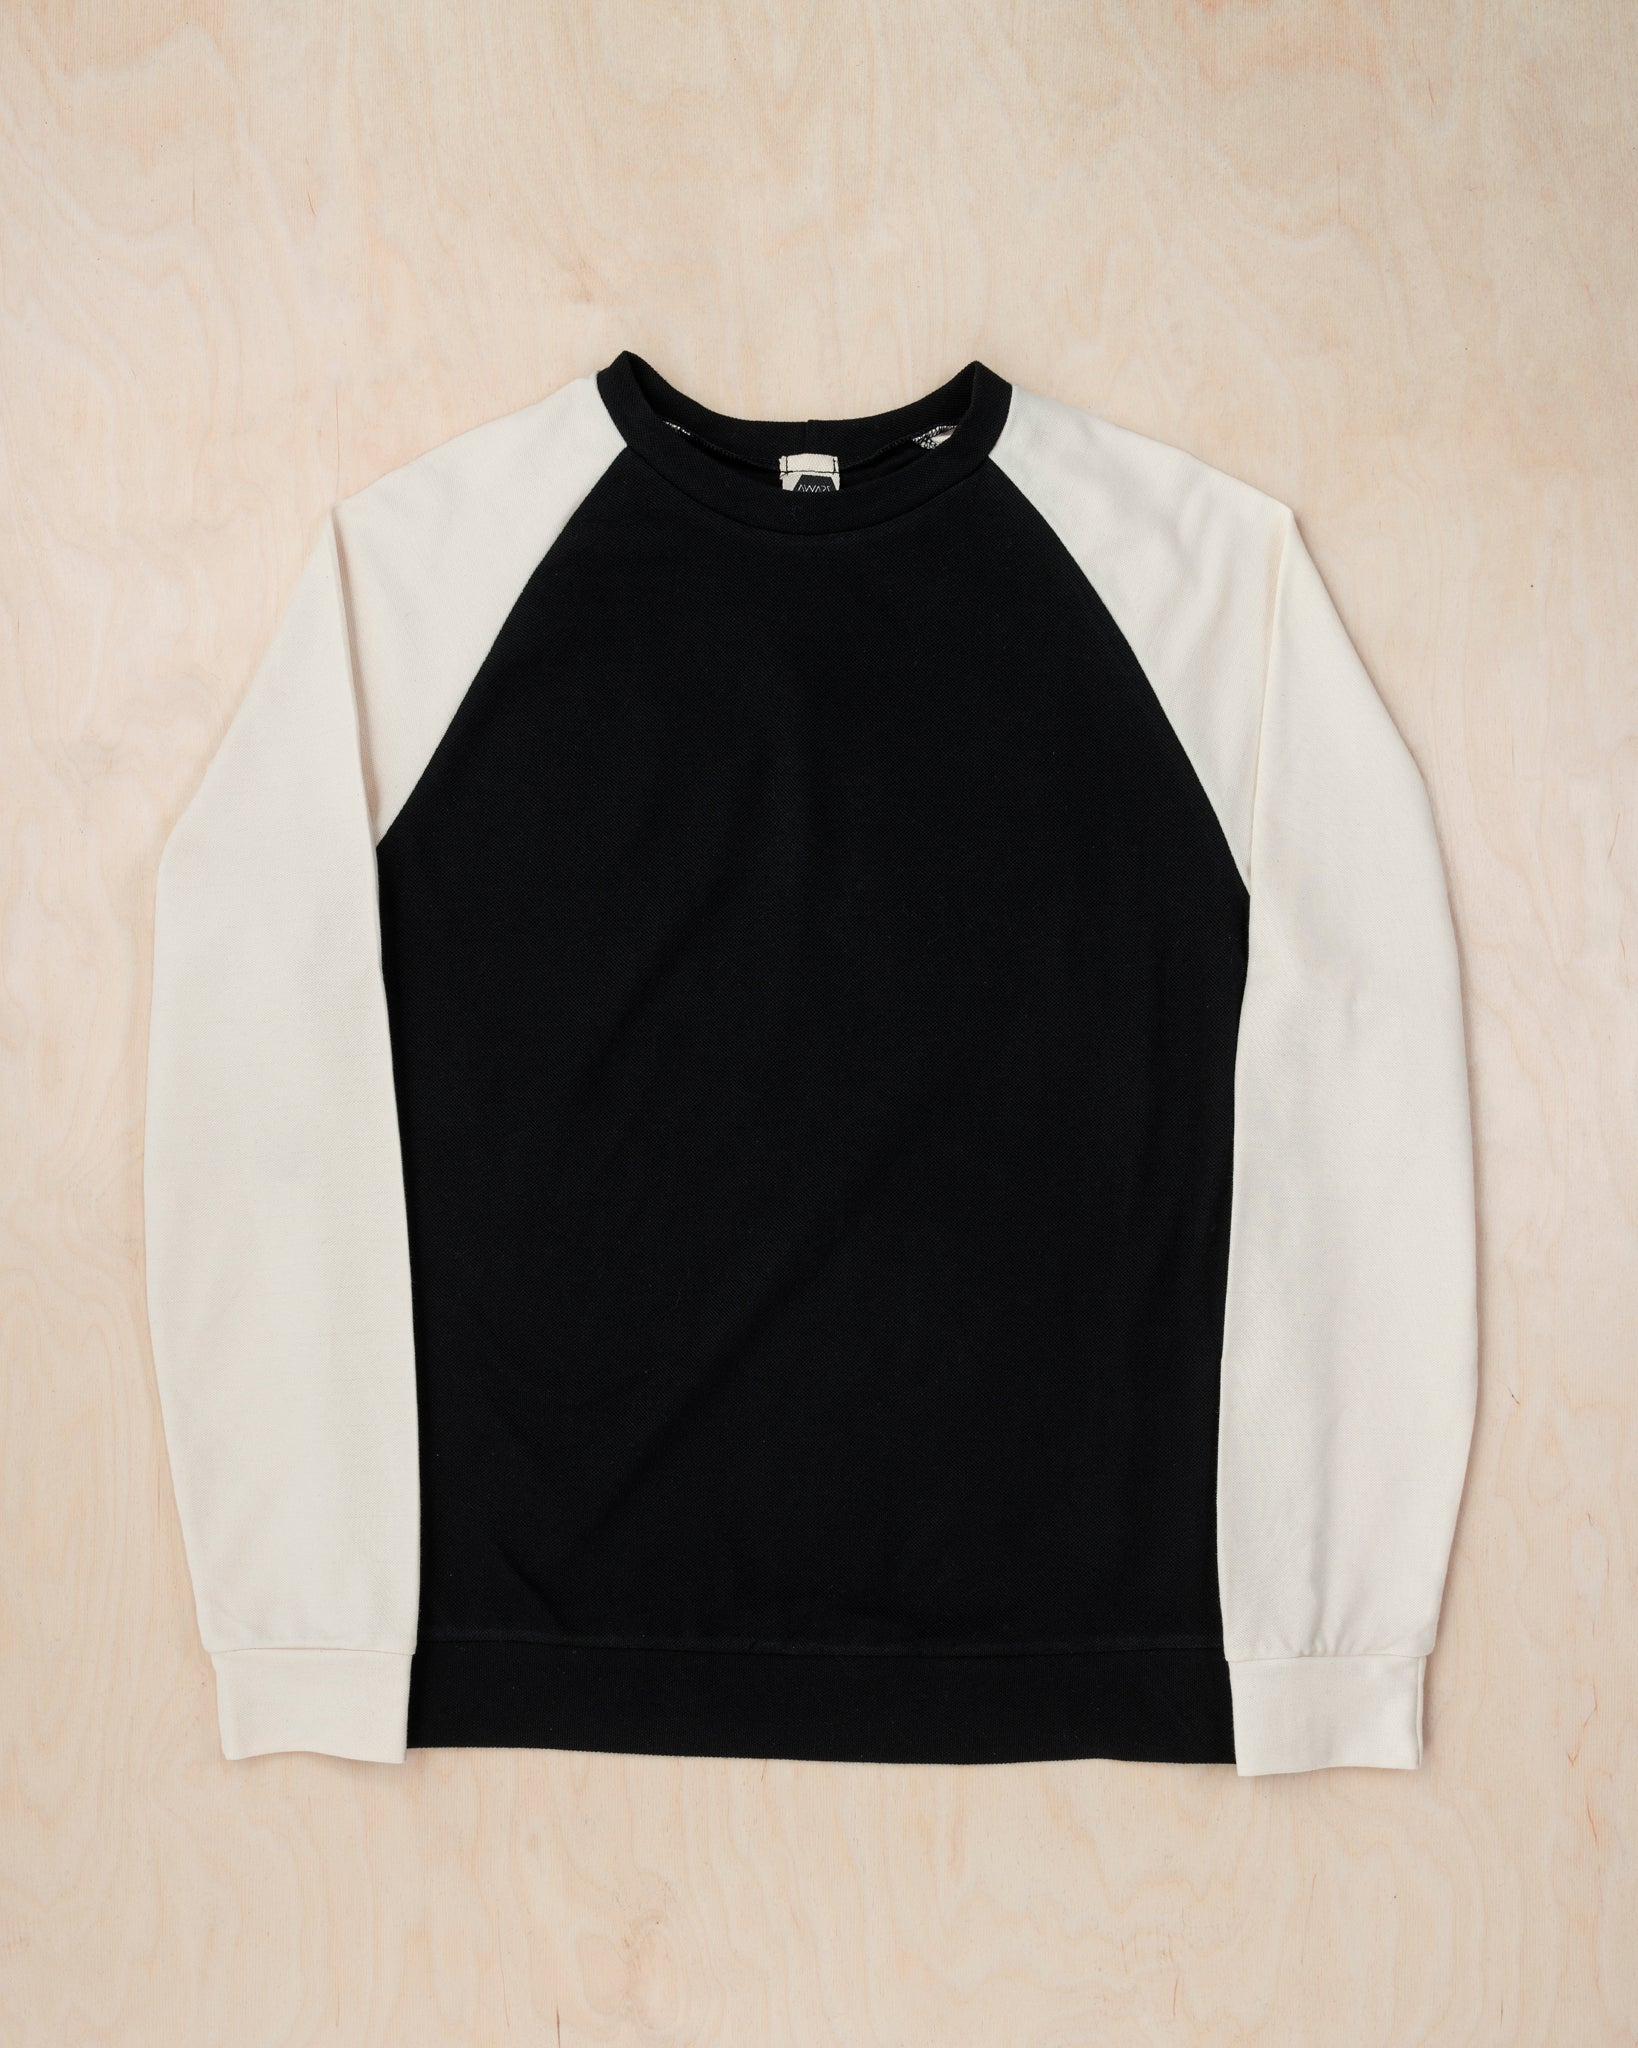 BLACK-BEIGE LONG-SLEEVED SHIRT